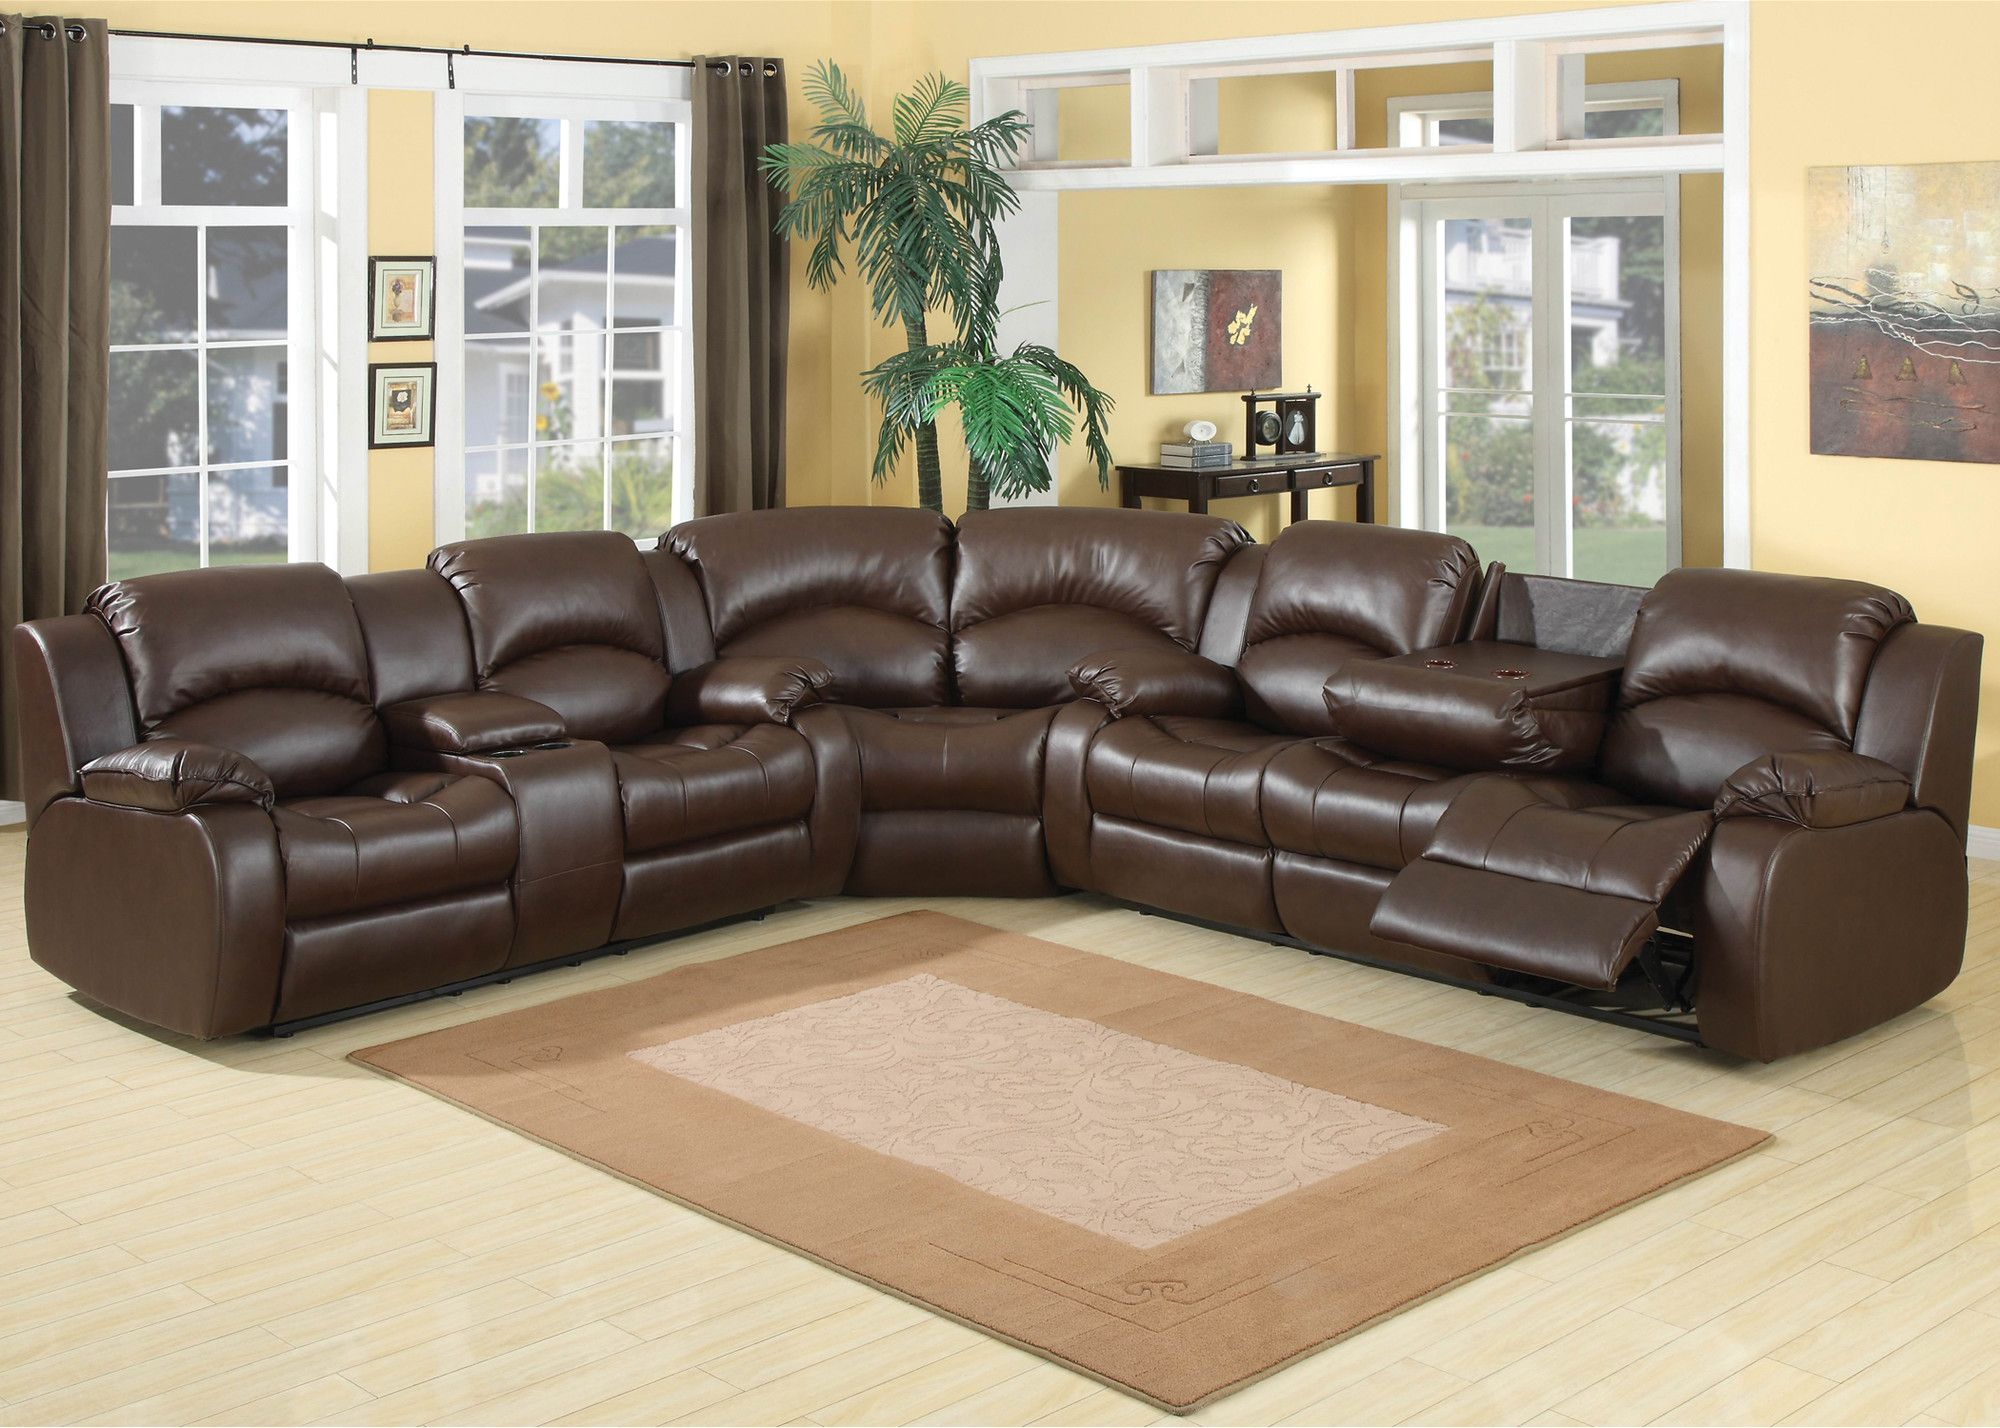 Nice Unique Best Sectional Sofa For The Money 82 In Small Home Remodel Ideas With